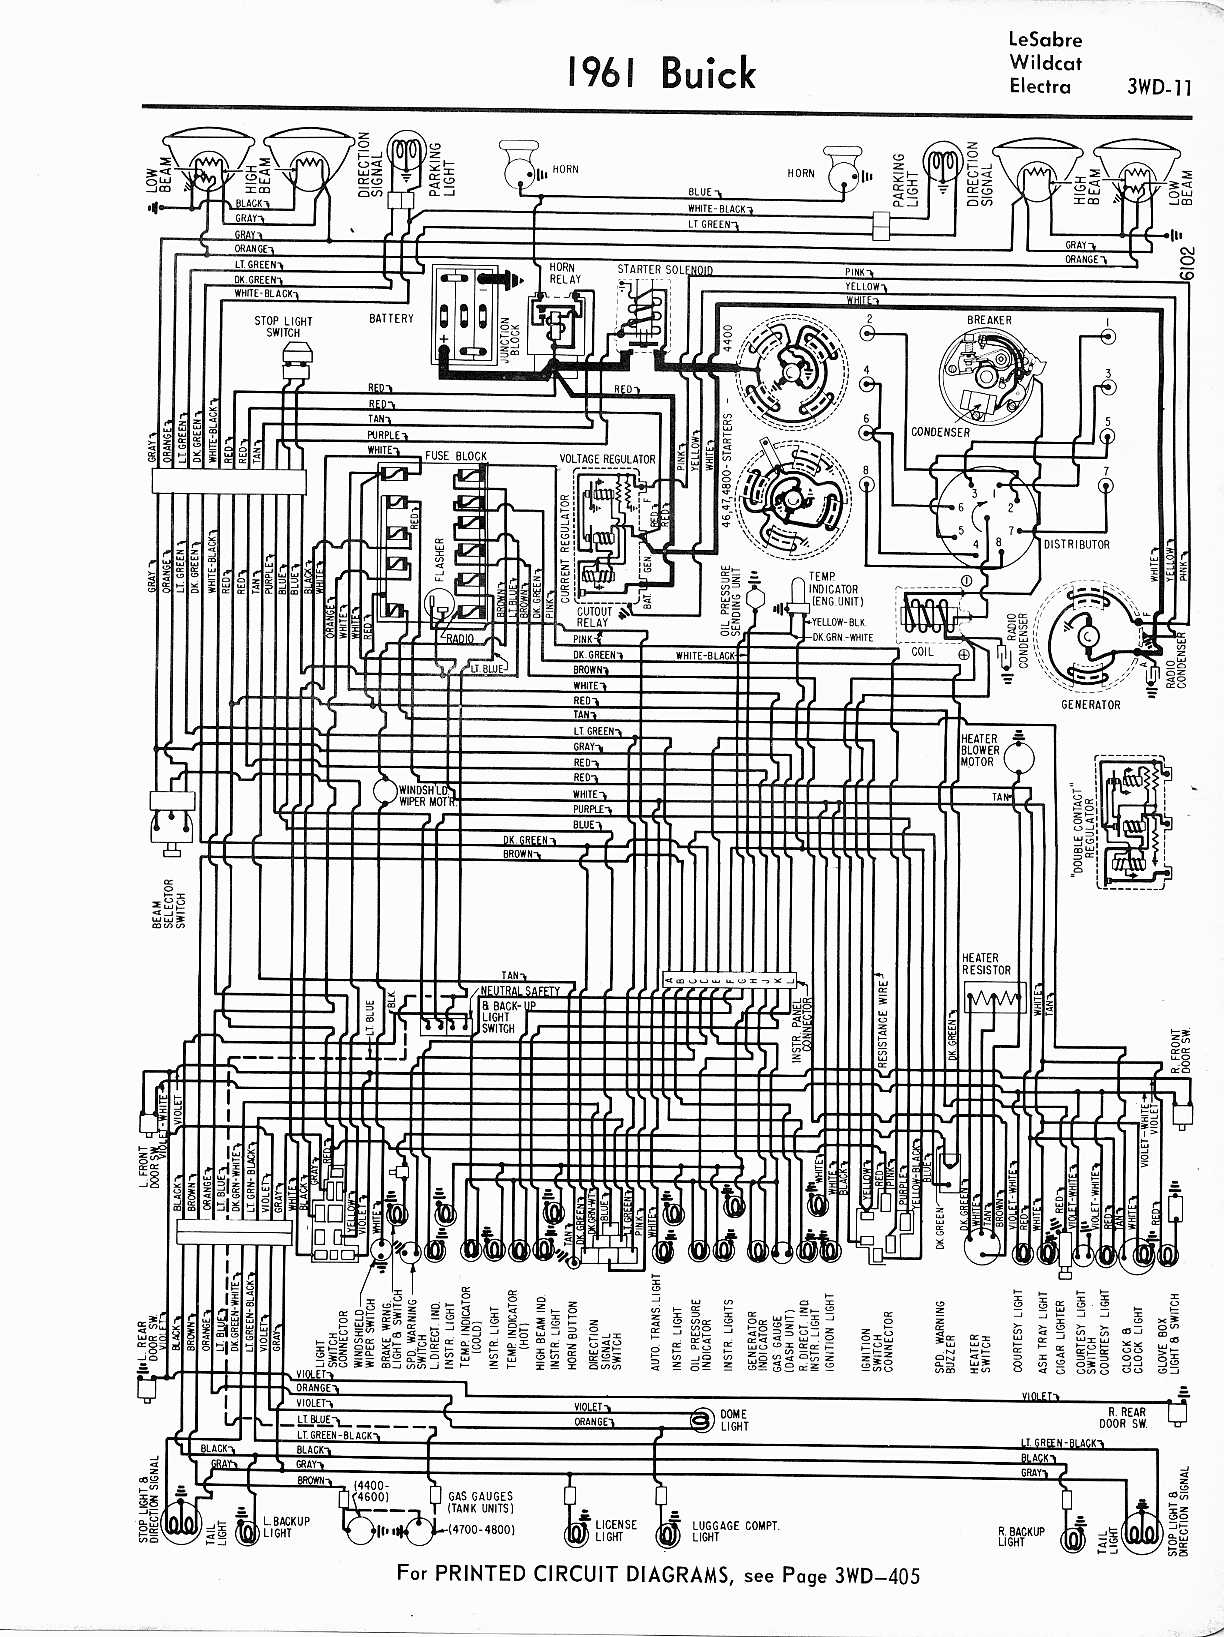 MWireBuic65_3WD 011 buick wiring diagrams 1957 1965 2001 buick lesabre radio wiring diagram at n-0.co